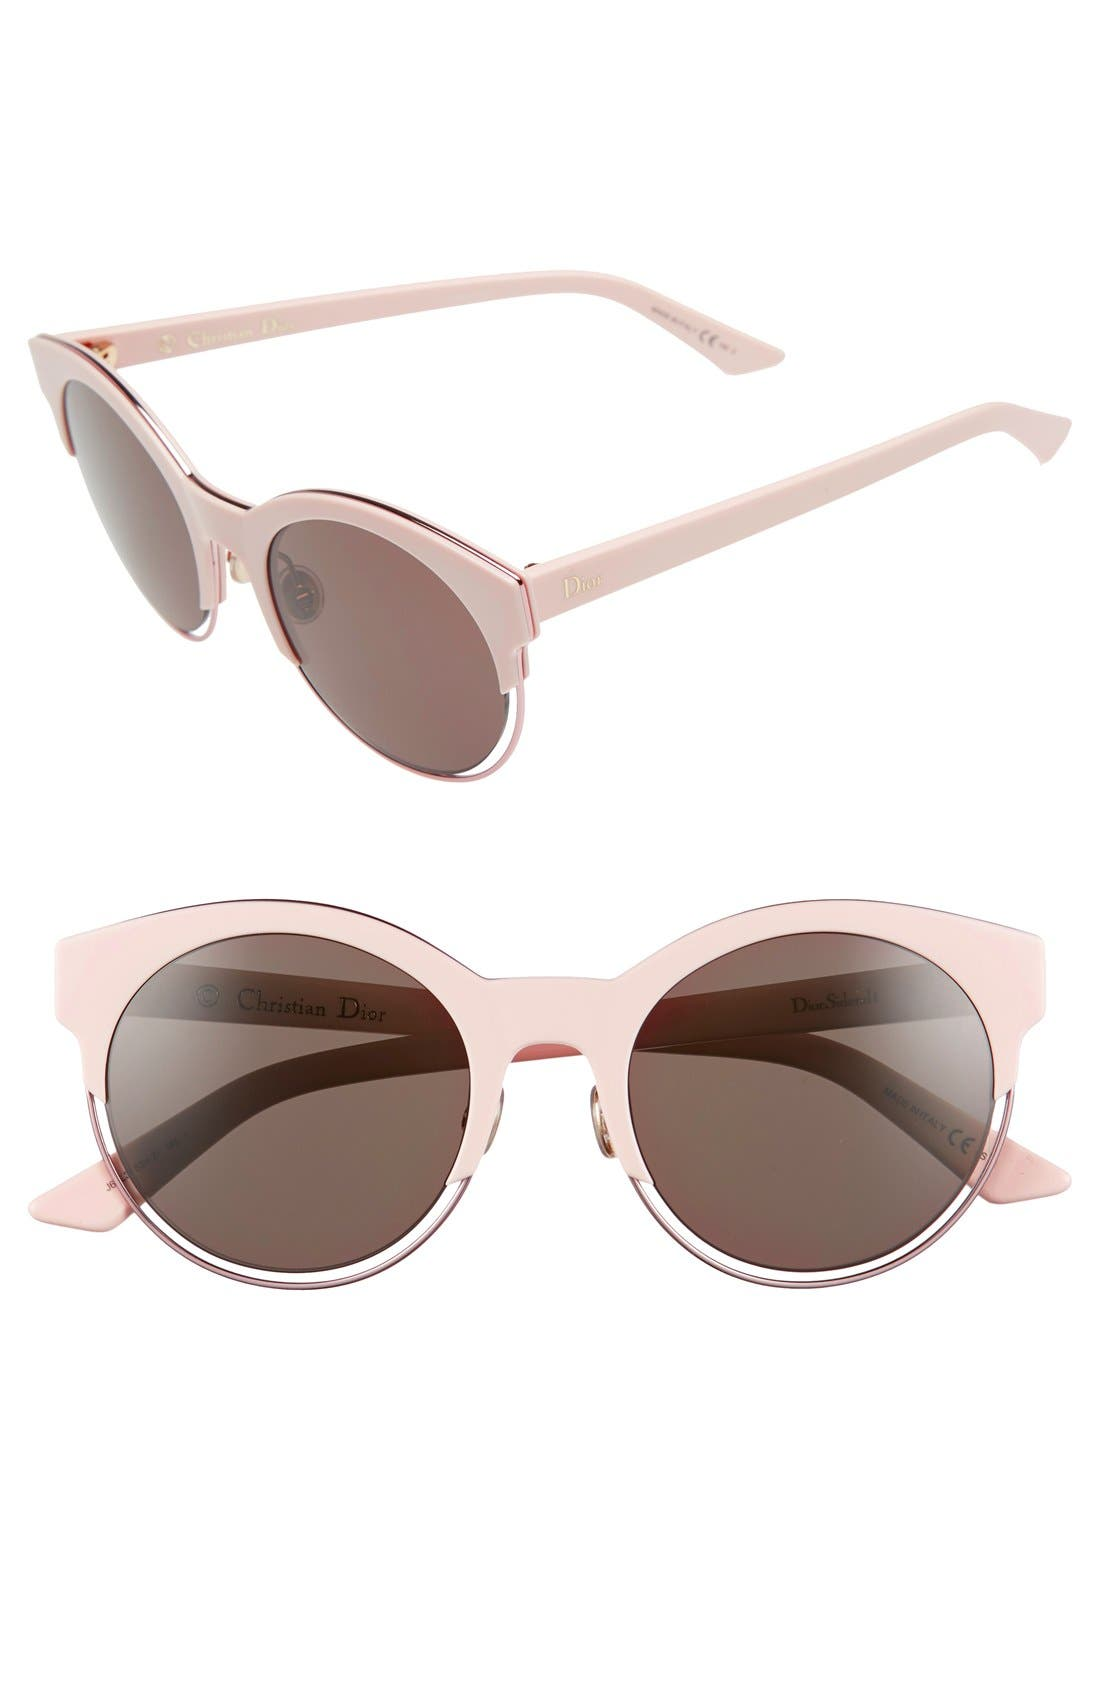 Siderall 1 53mm Round Sunglasses,                             Main thumbnail 9, color,